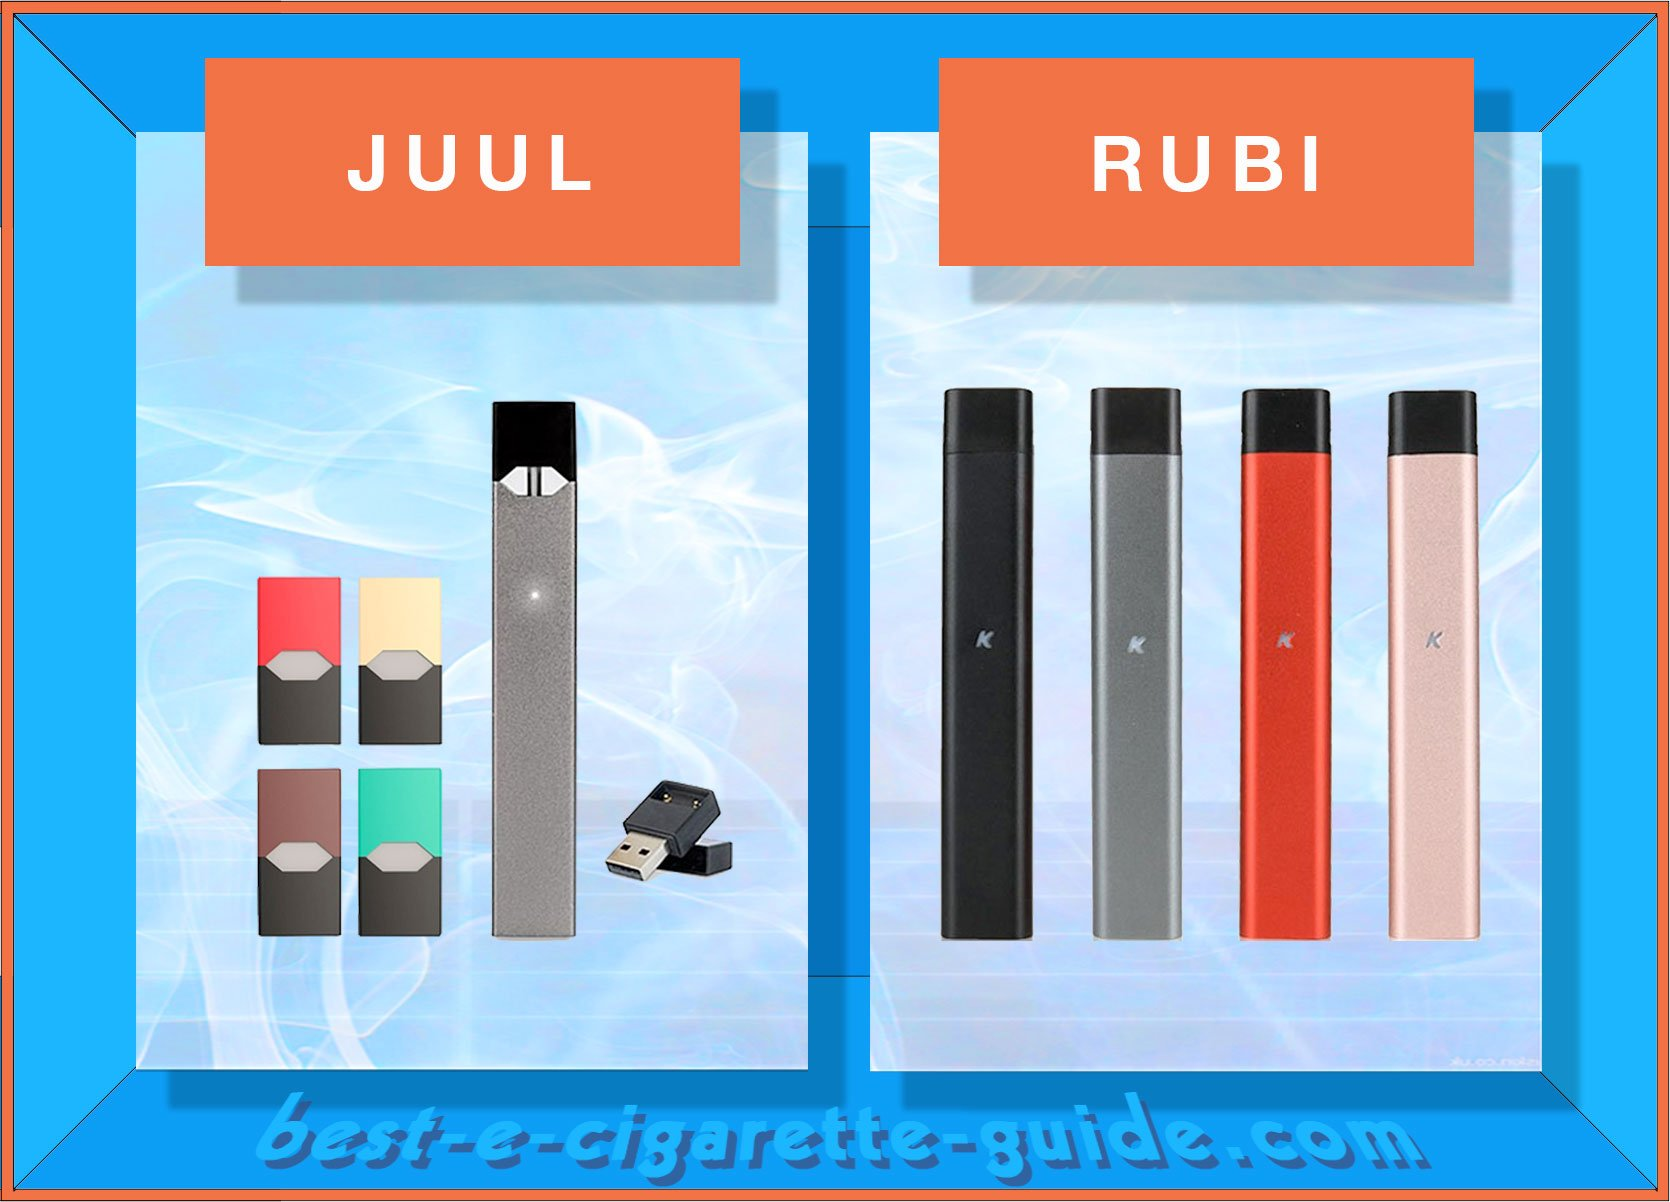 RUBI Vape Pod Pen vs JUUL - Which Ecig is a Better Choice